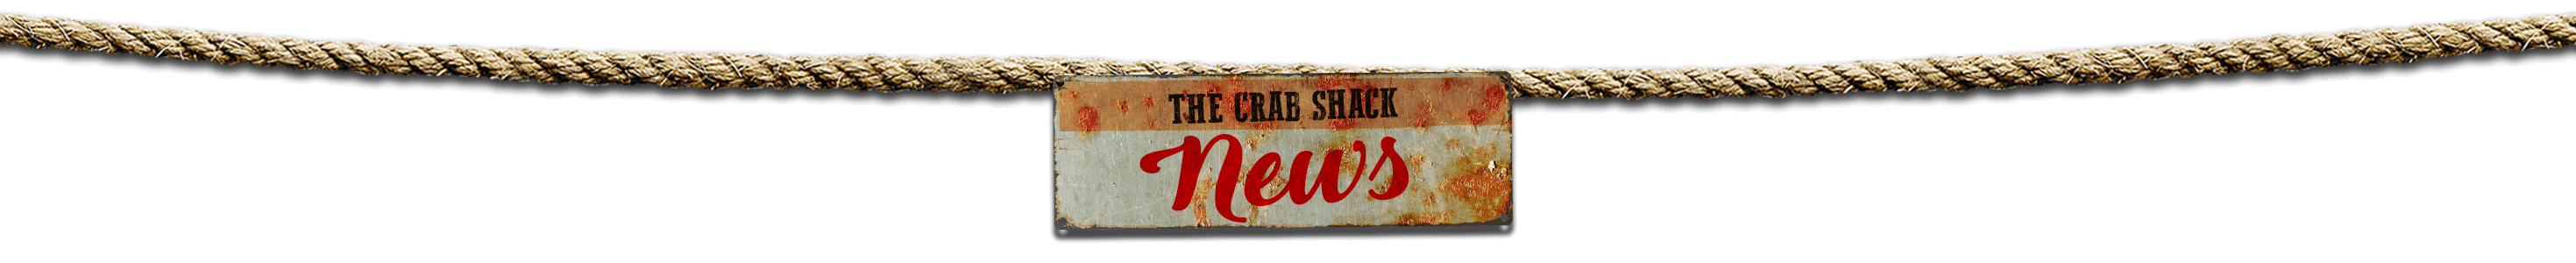 news-even-the-crab-shack